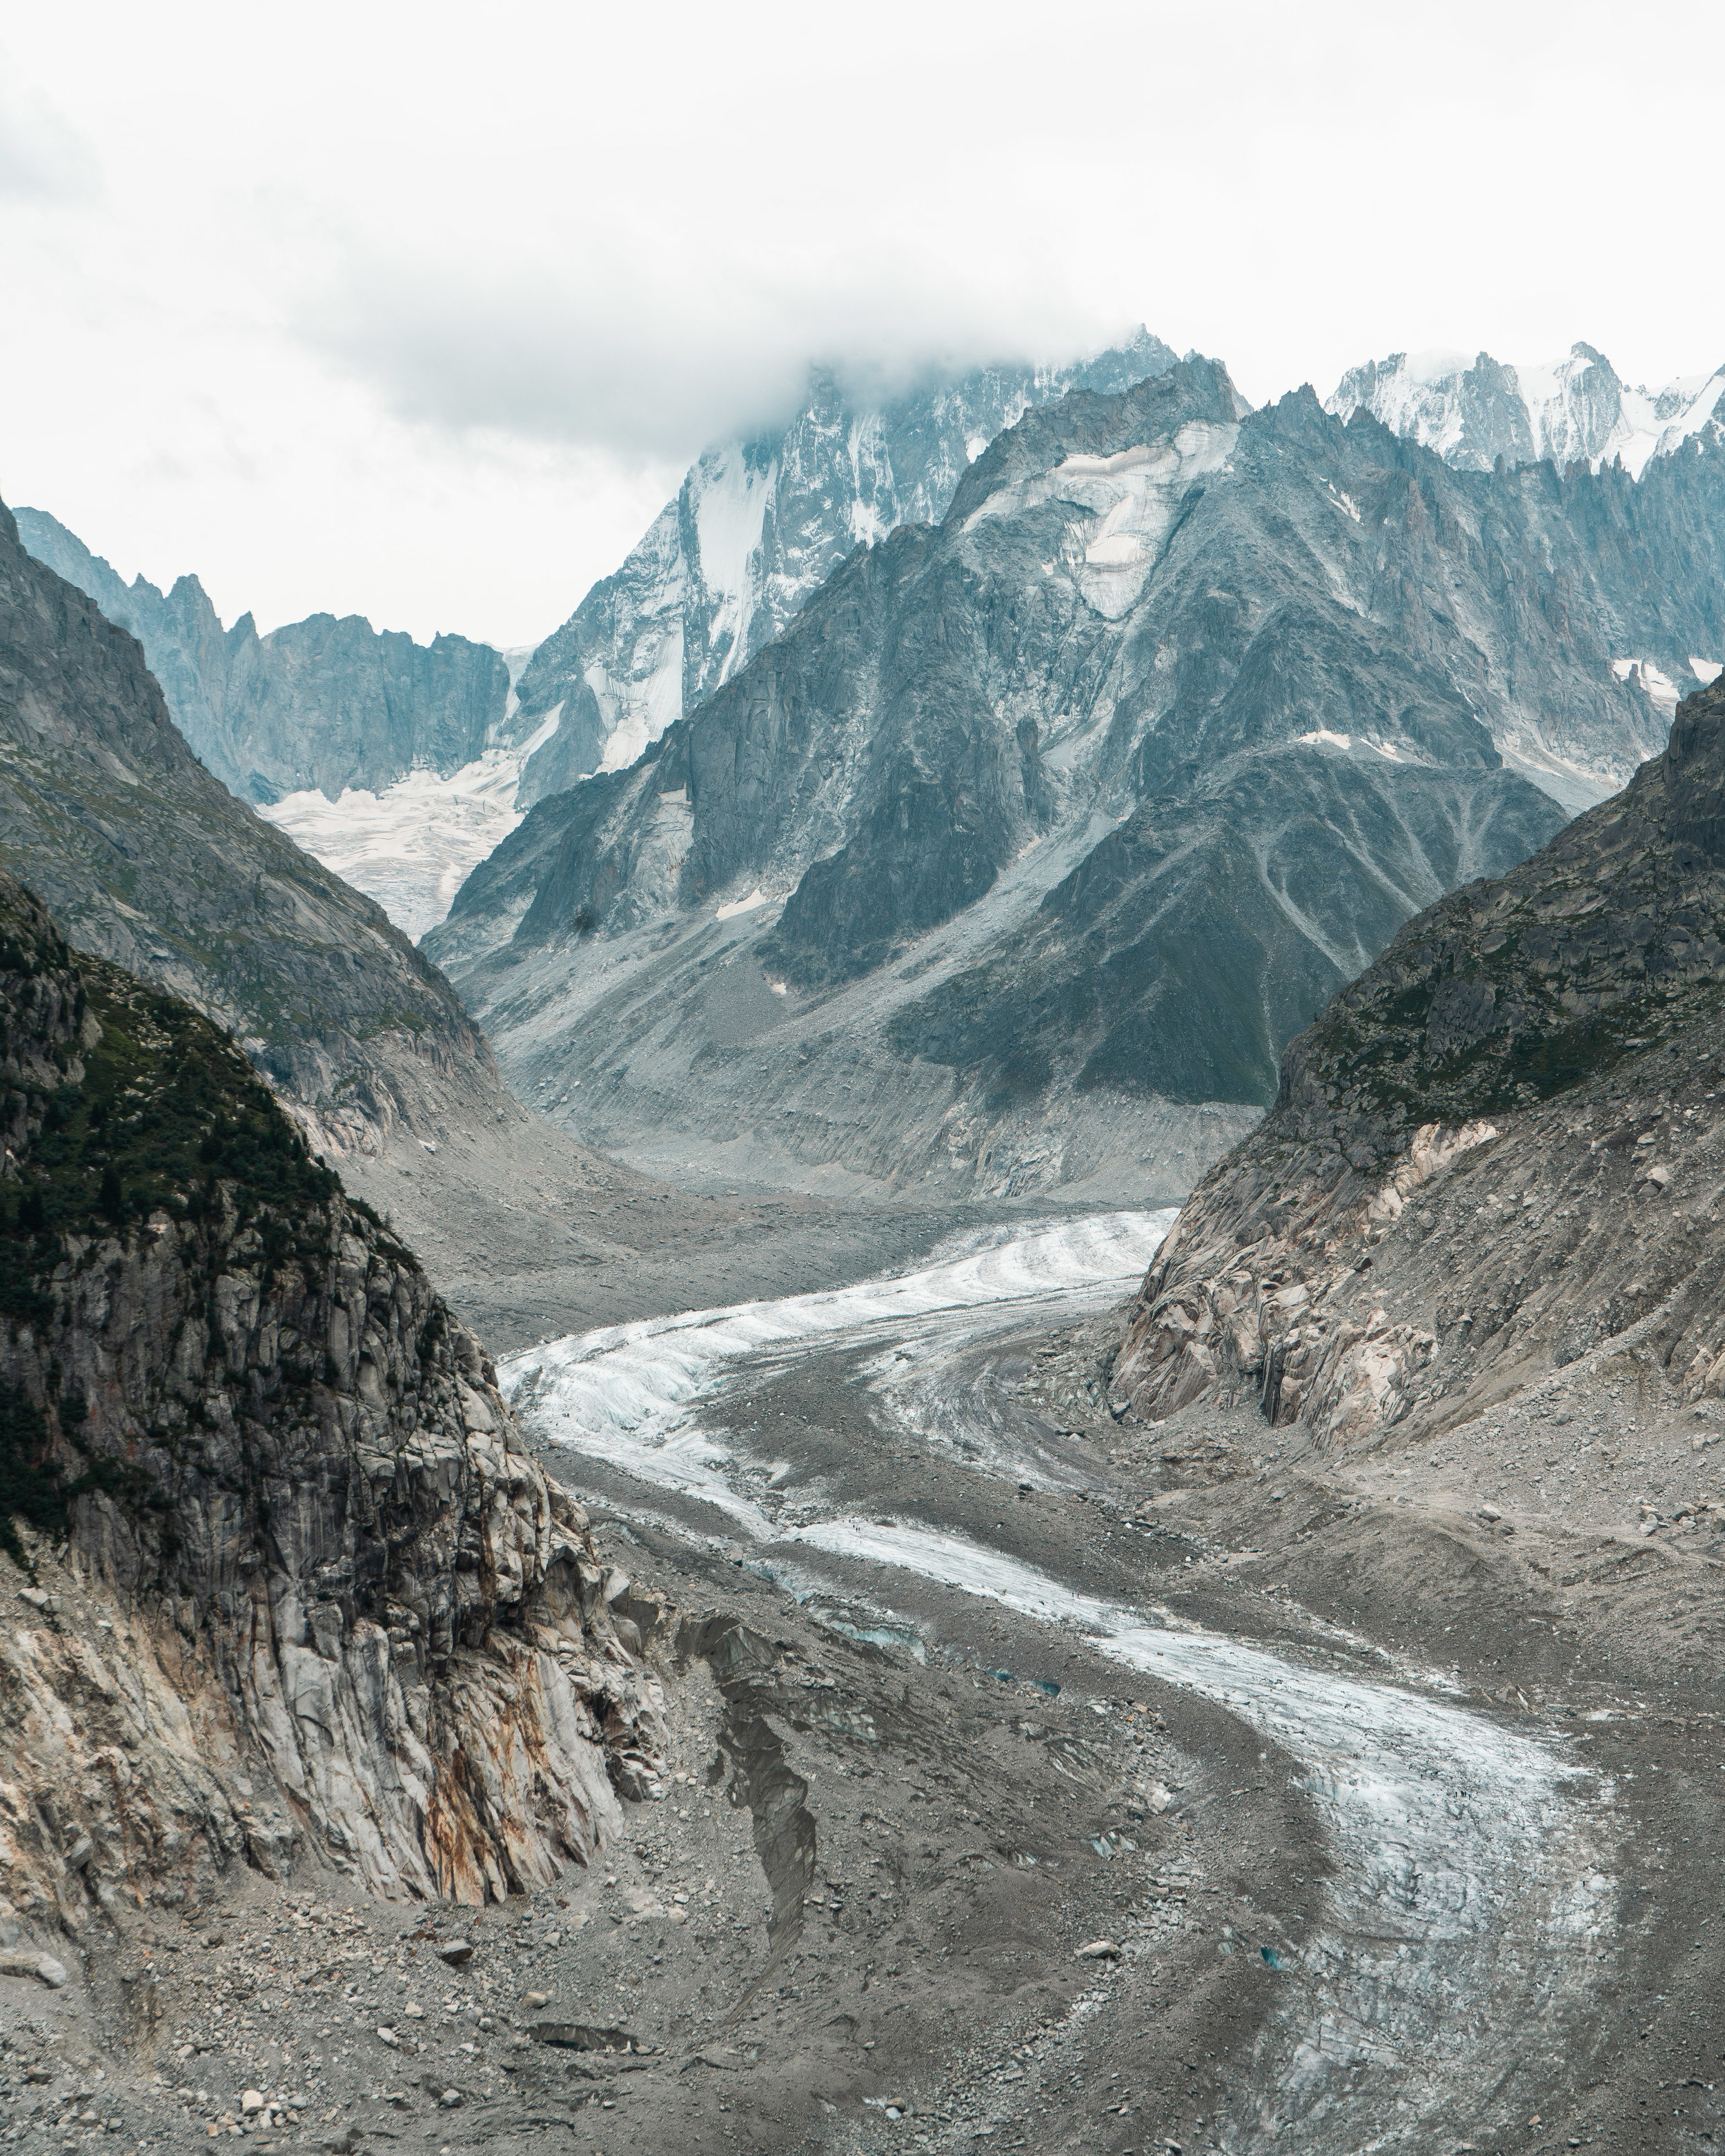 The Mer de Glace is the largest glacier in France, 7km long and 200m deep